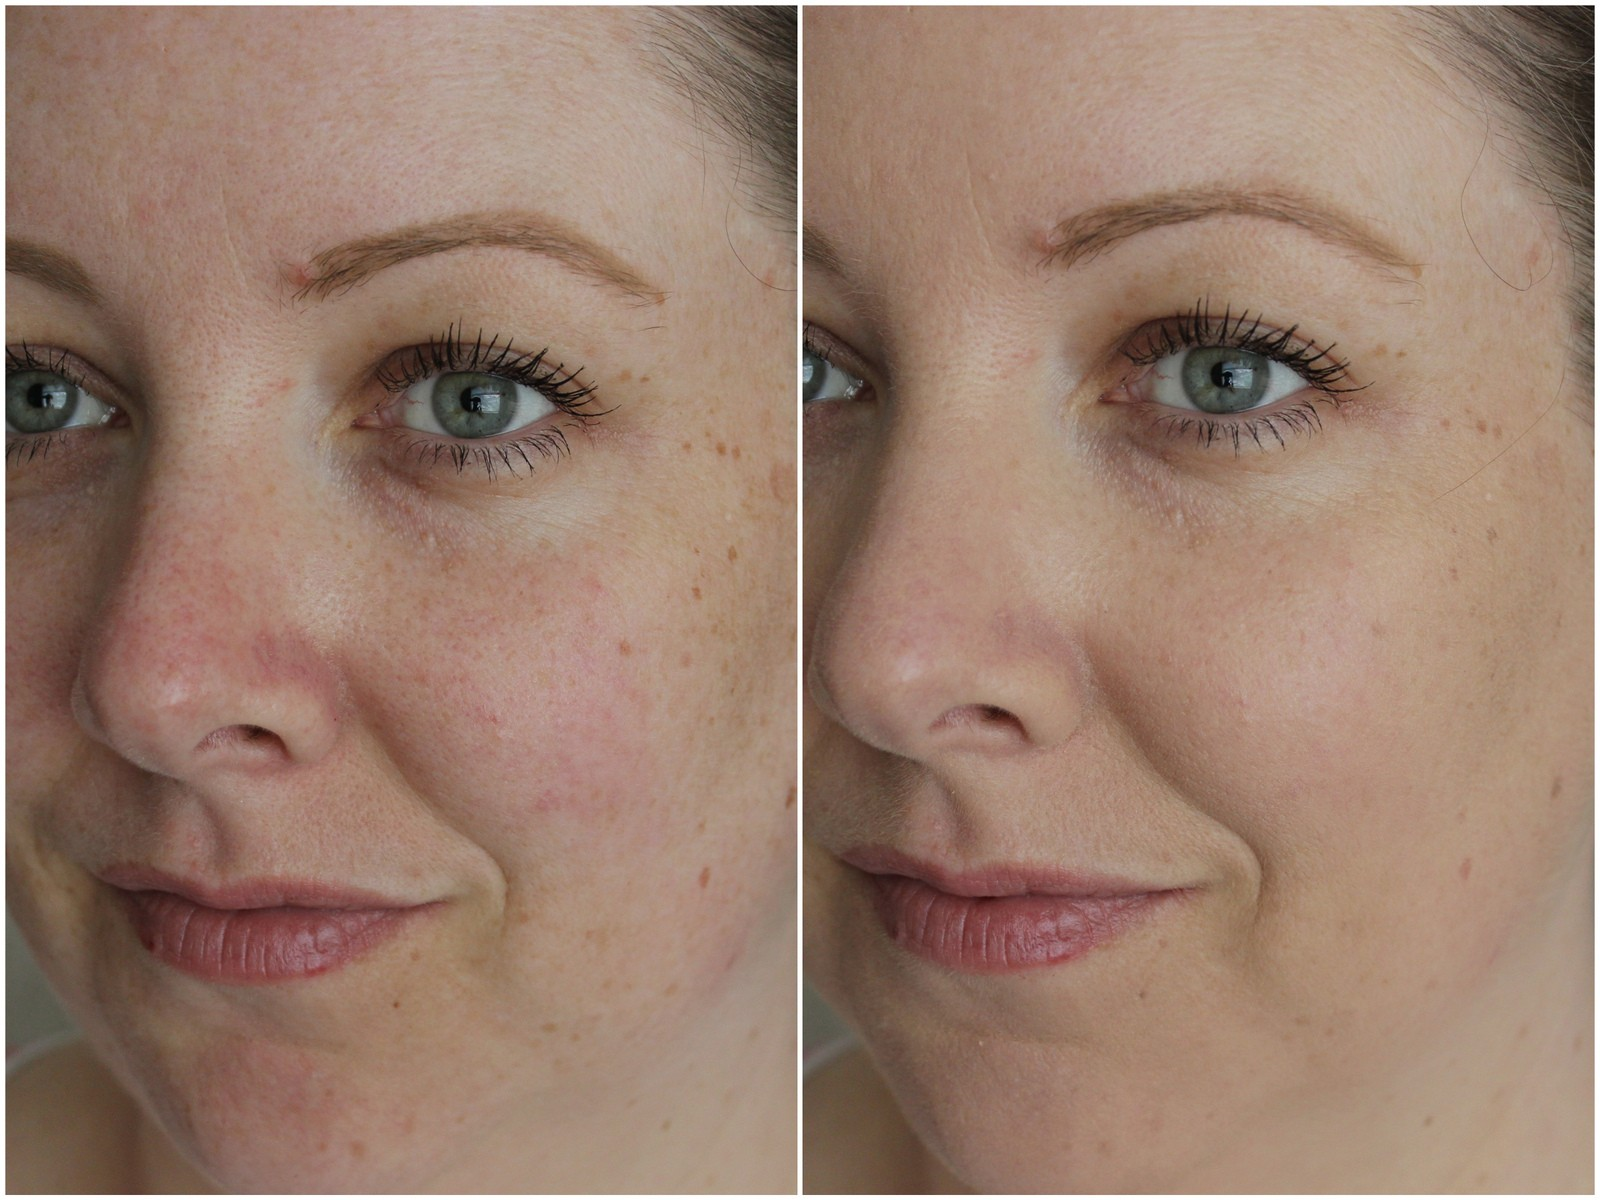 Rimmel Match Perfection foundation review, before & after photos!